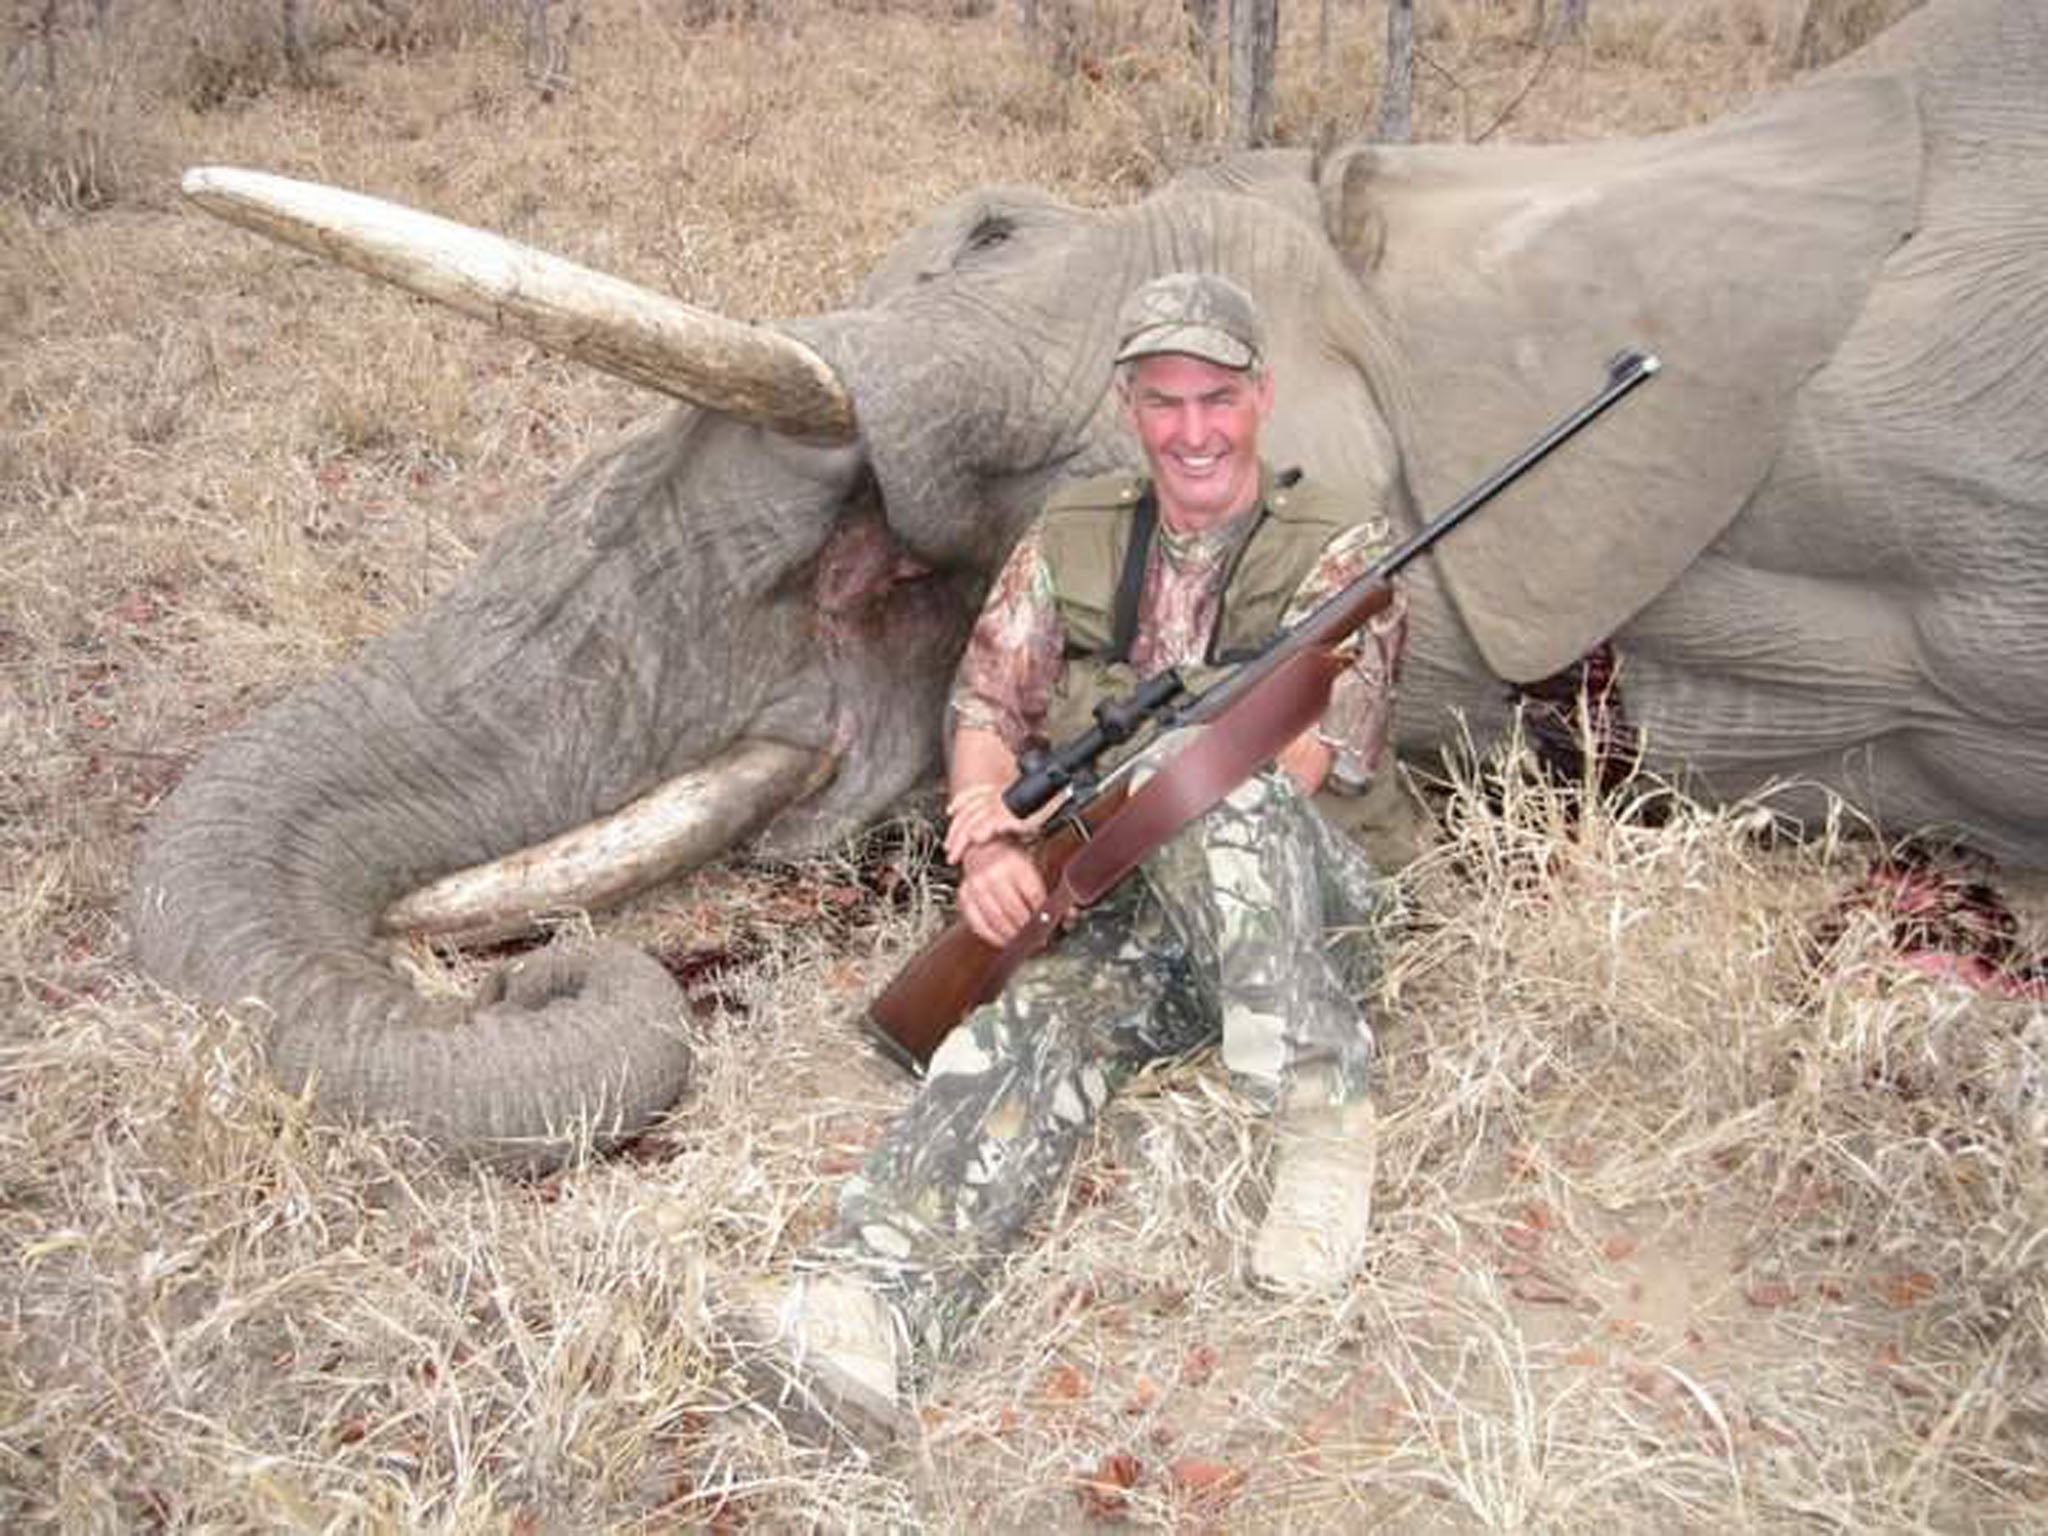 The Zebra Insurance >> Outrage over photos of UK hunter posing with dead elephant and zebra | The Independent